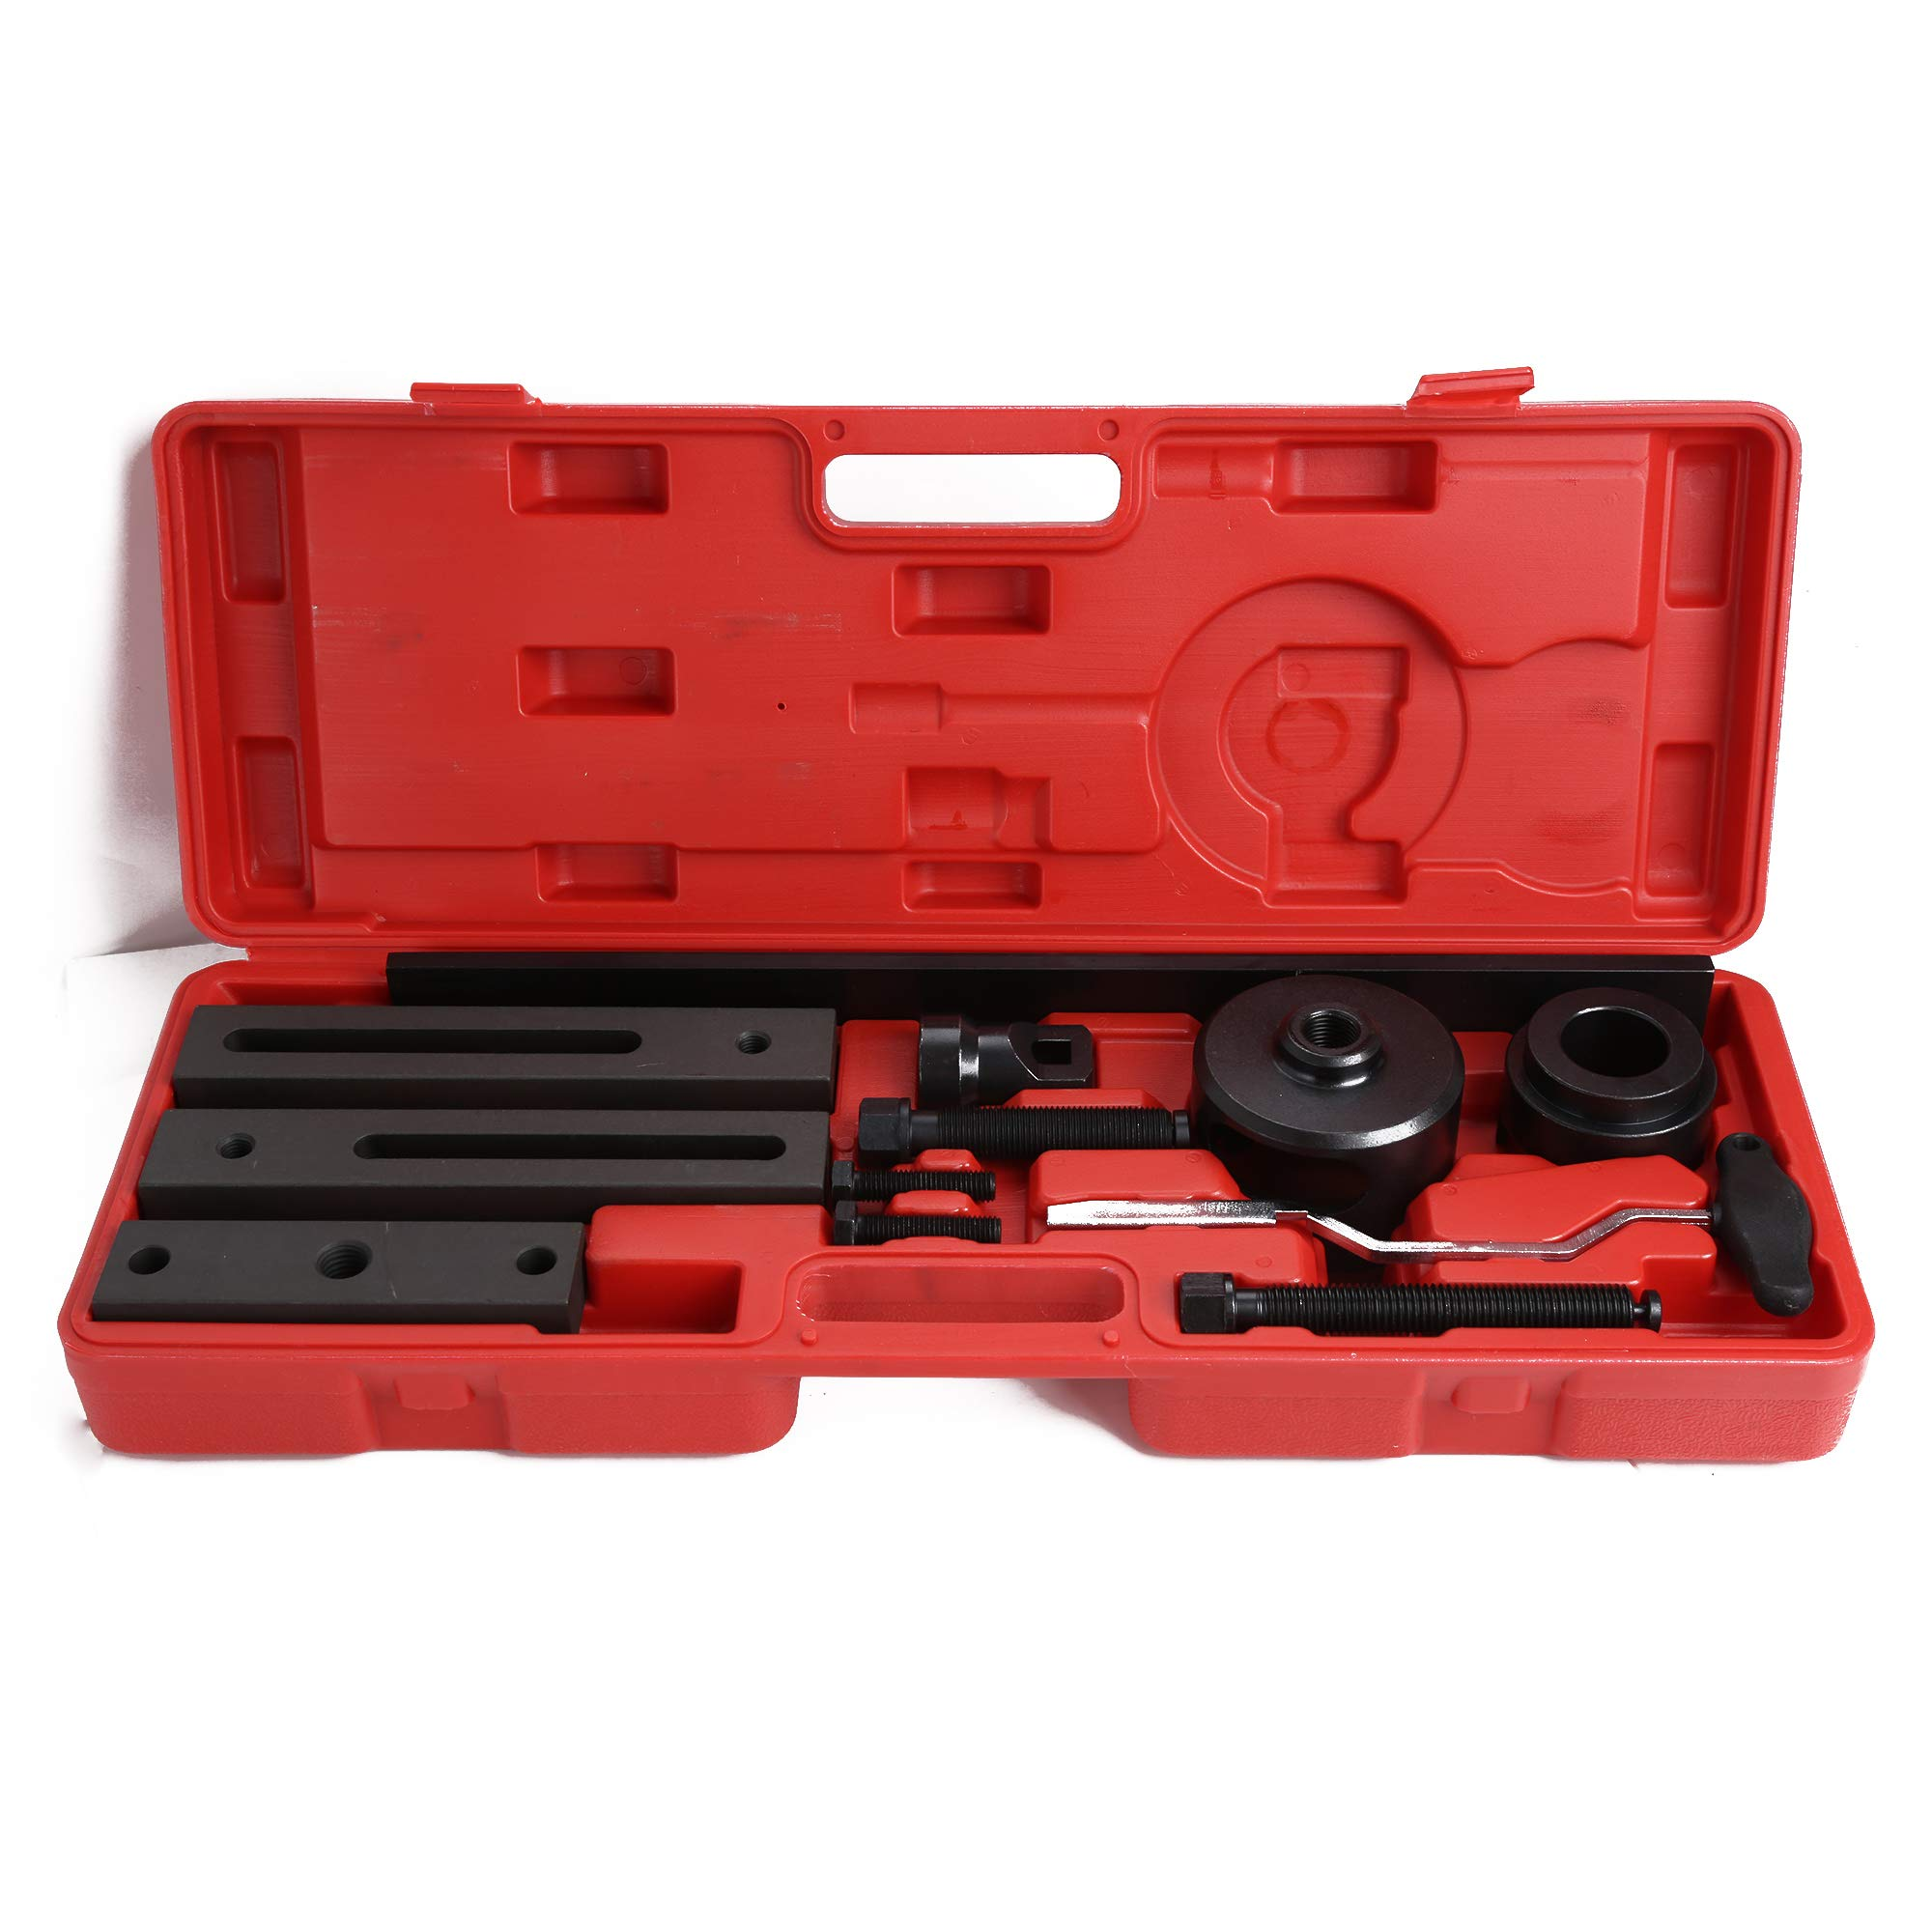 WINTOOLS Compatible for Transmission Installation and Installing The Clutch Tool for Audi, SEAT, Skoda and Volkswagen